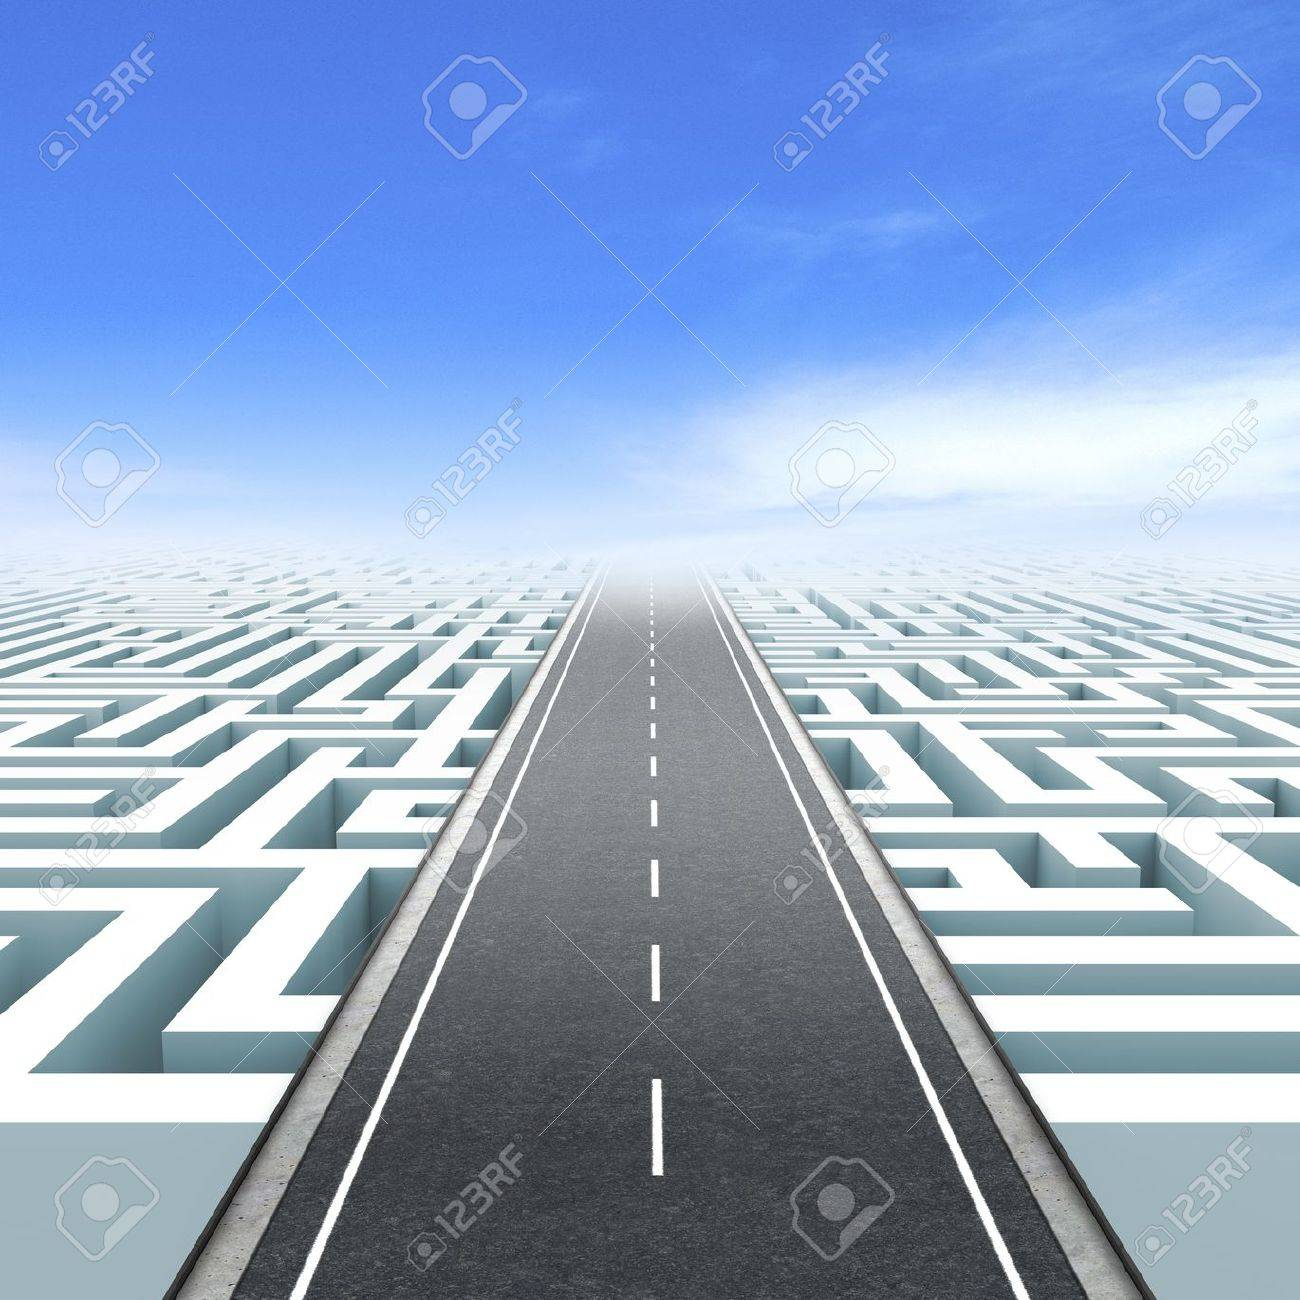 Leadership and business vision with strategy in corporate challenges  Road to success Stock Photo - 15712339